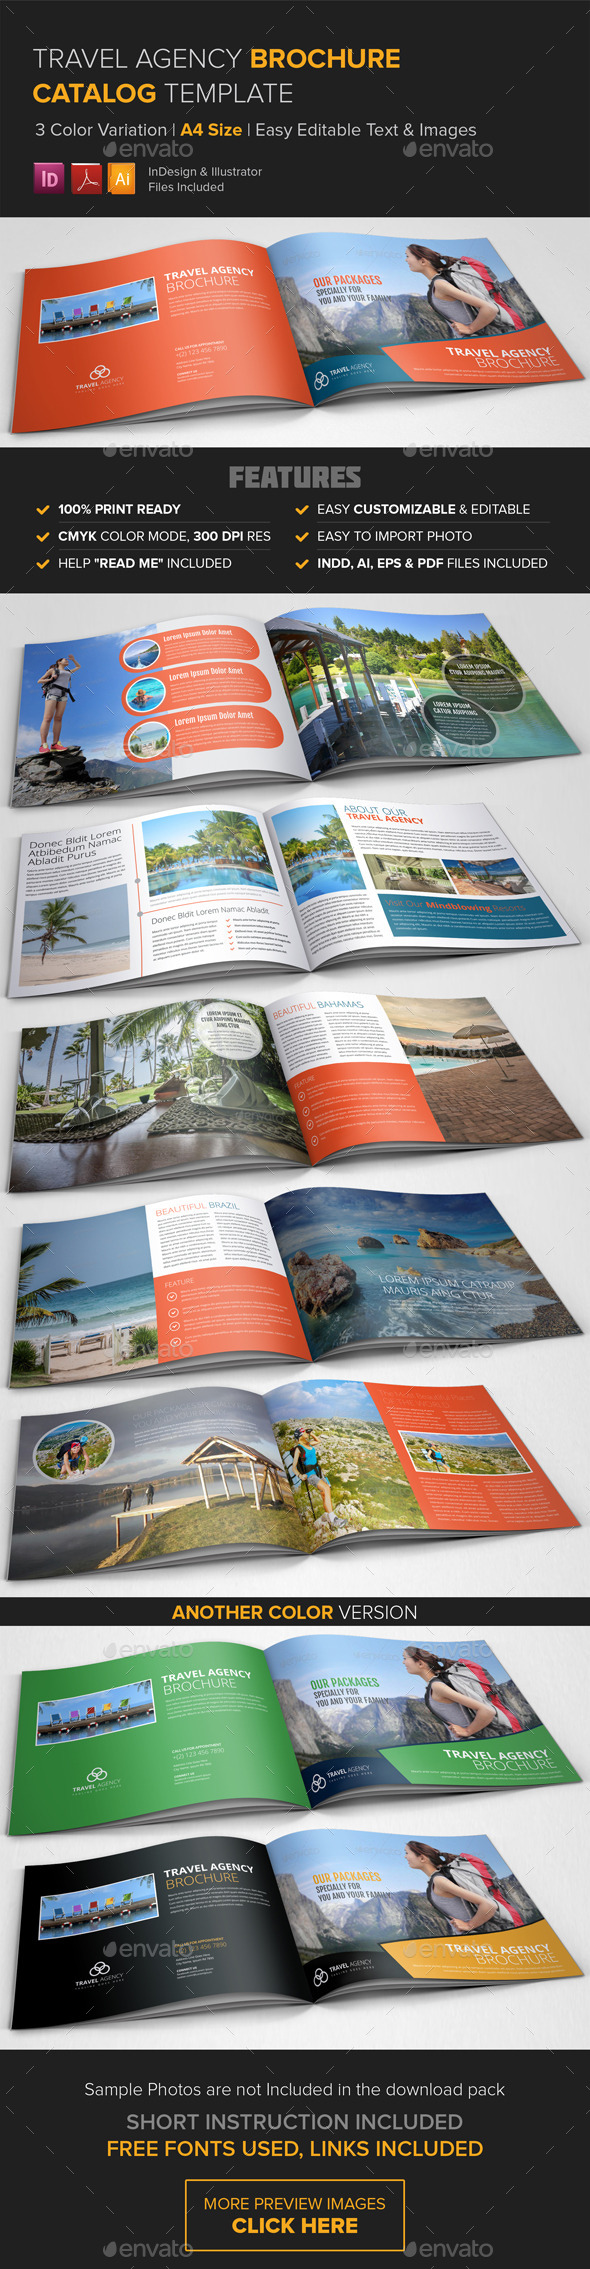 GraphicRiver Travel Agency Brochure Catalog Template 8892257